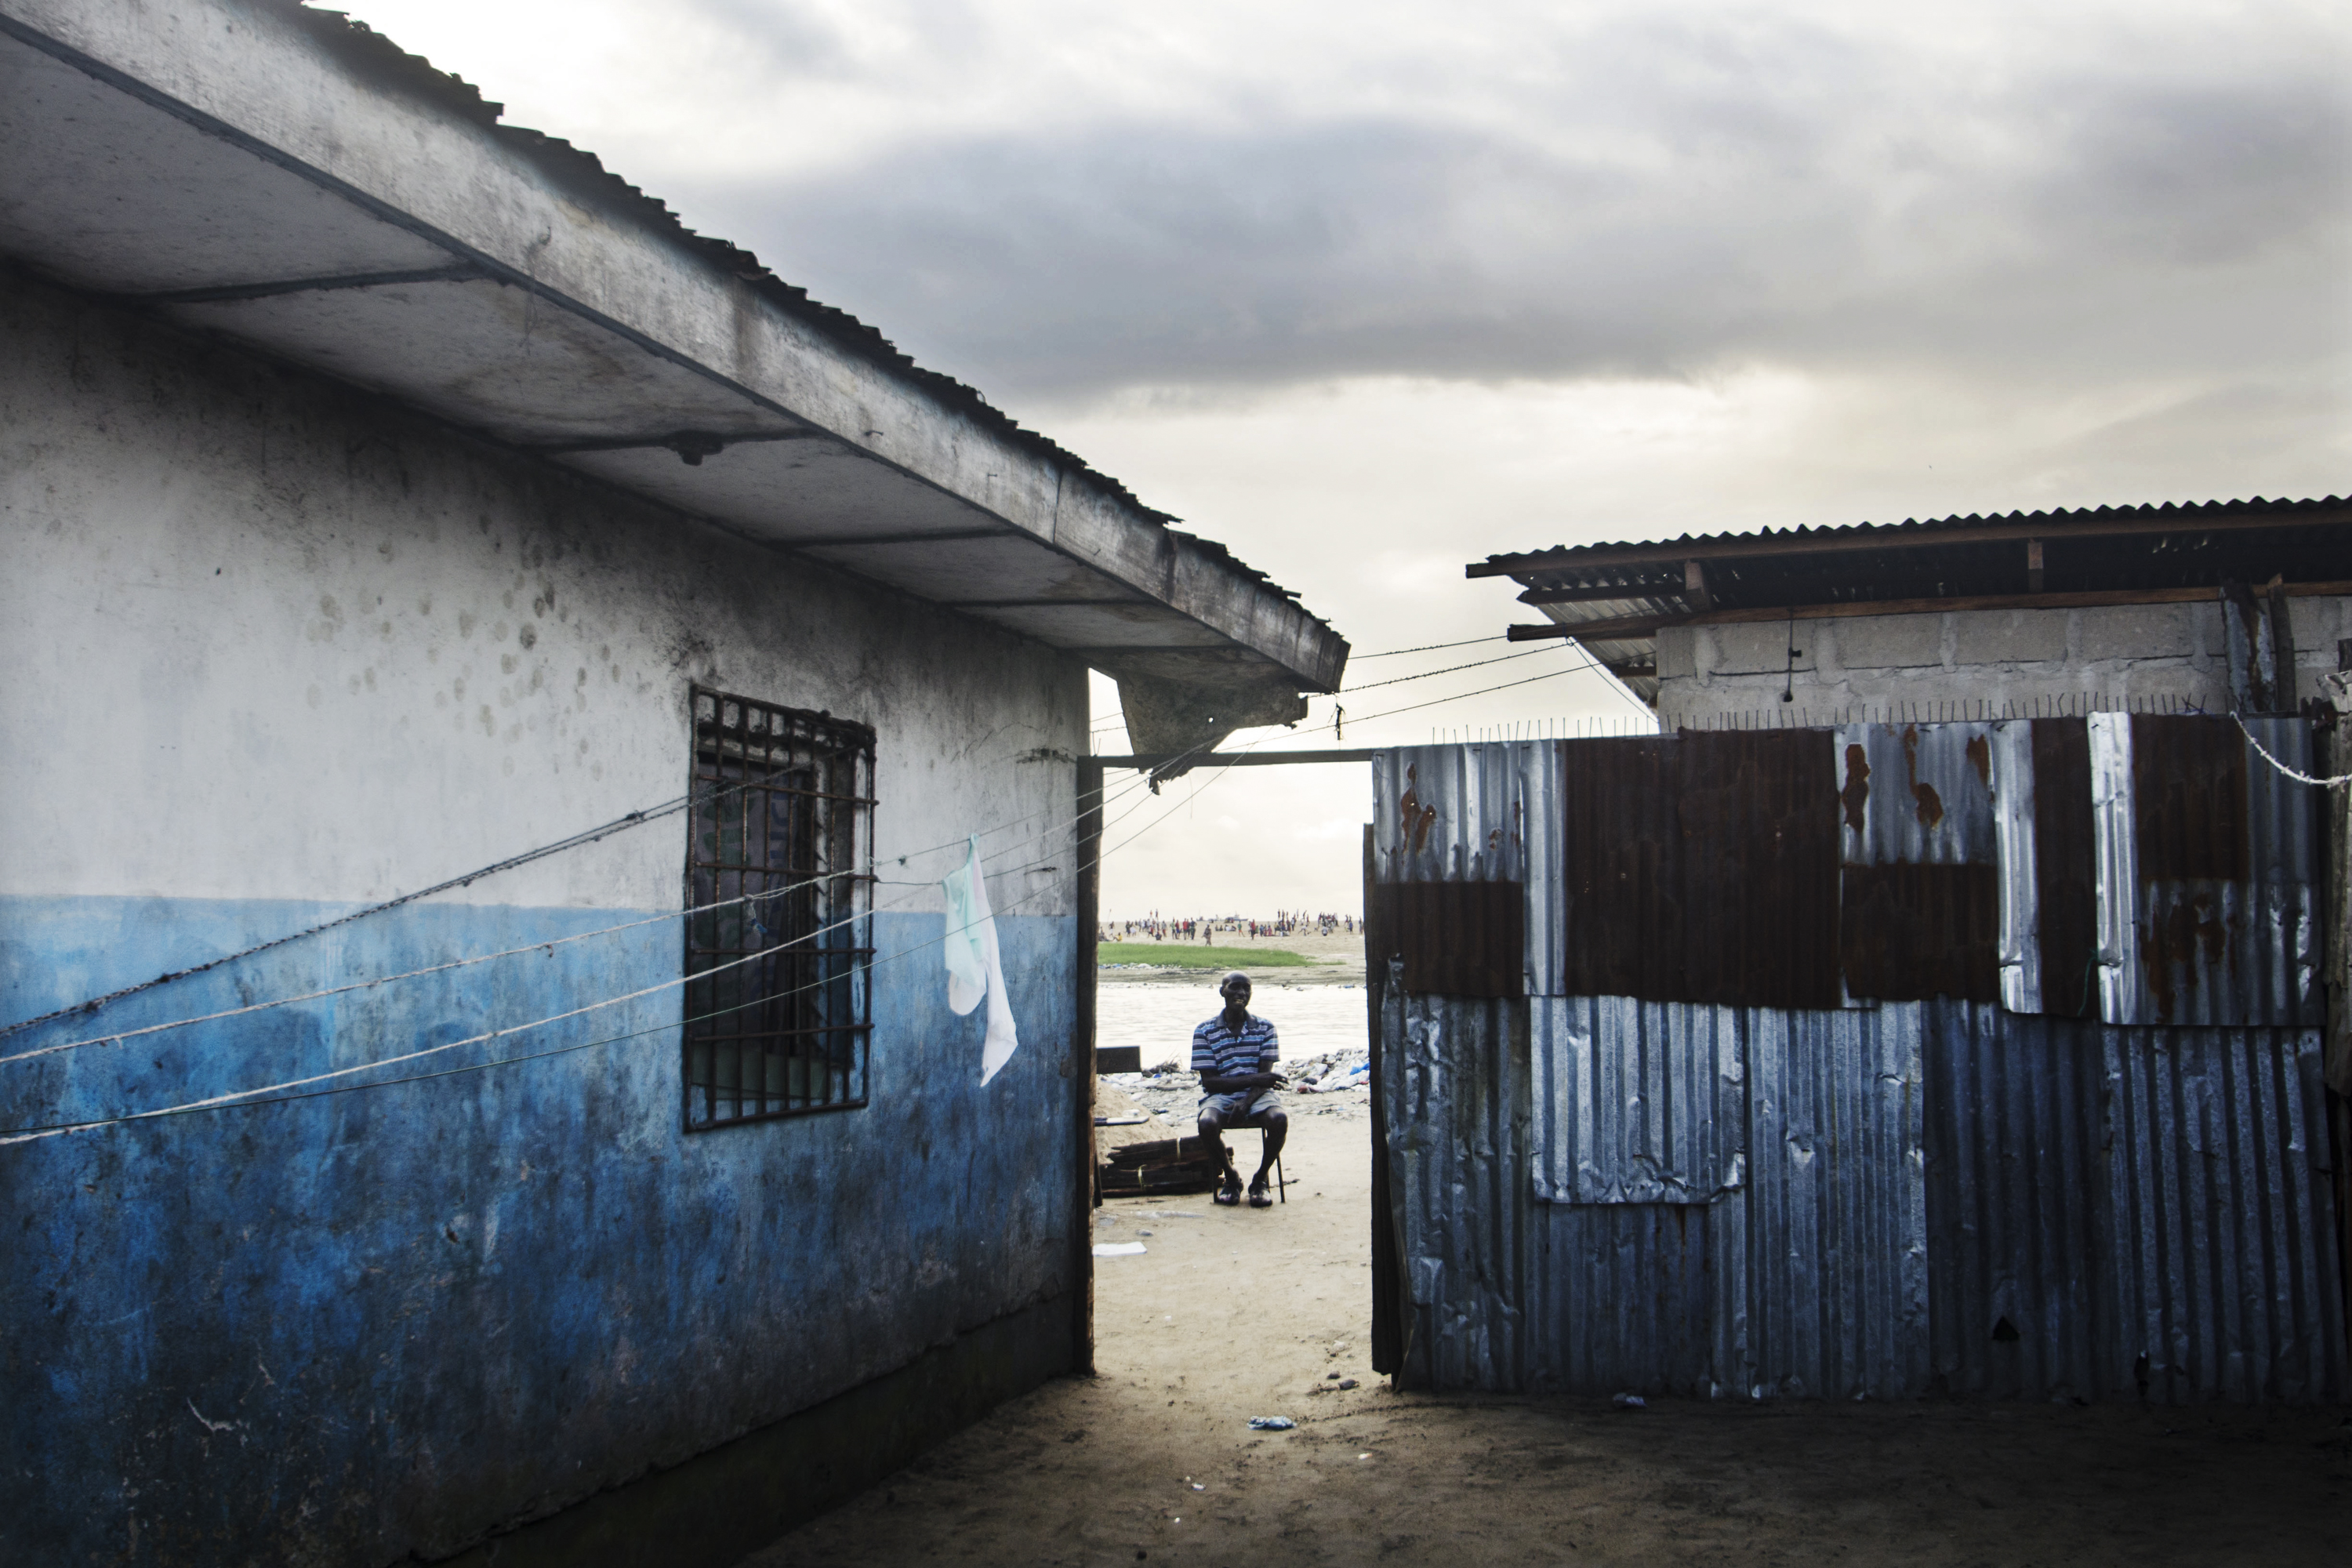 A resident takes in the view from this Liberian slum.